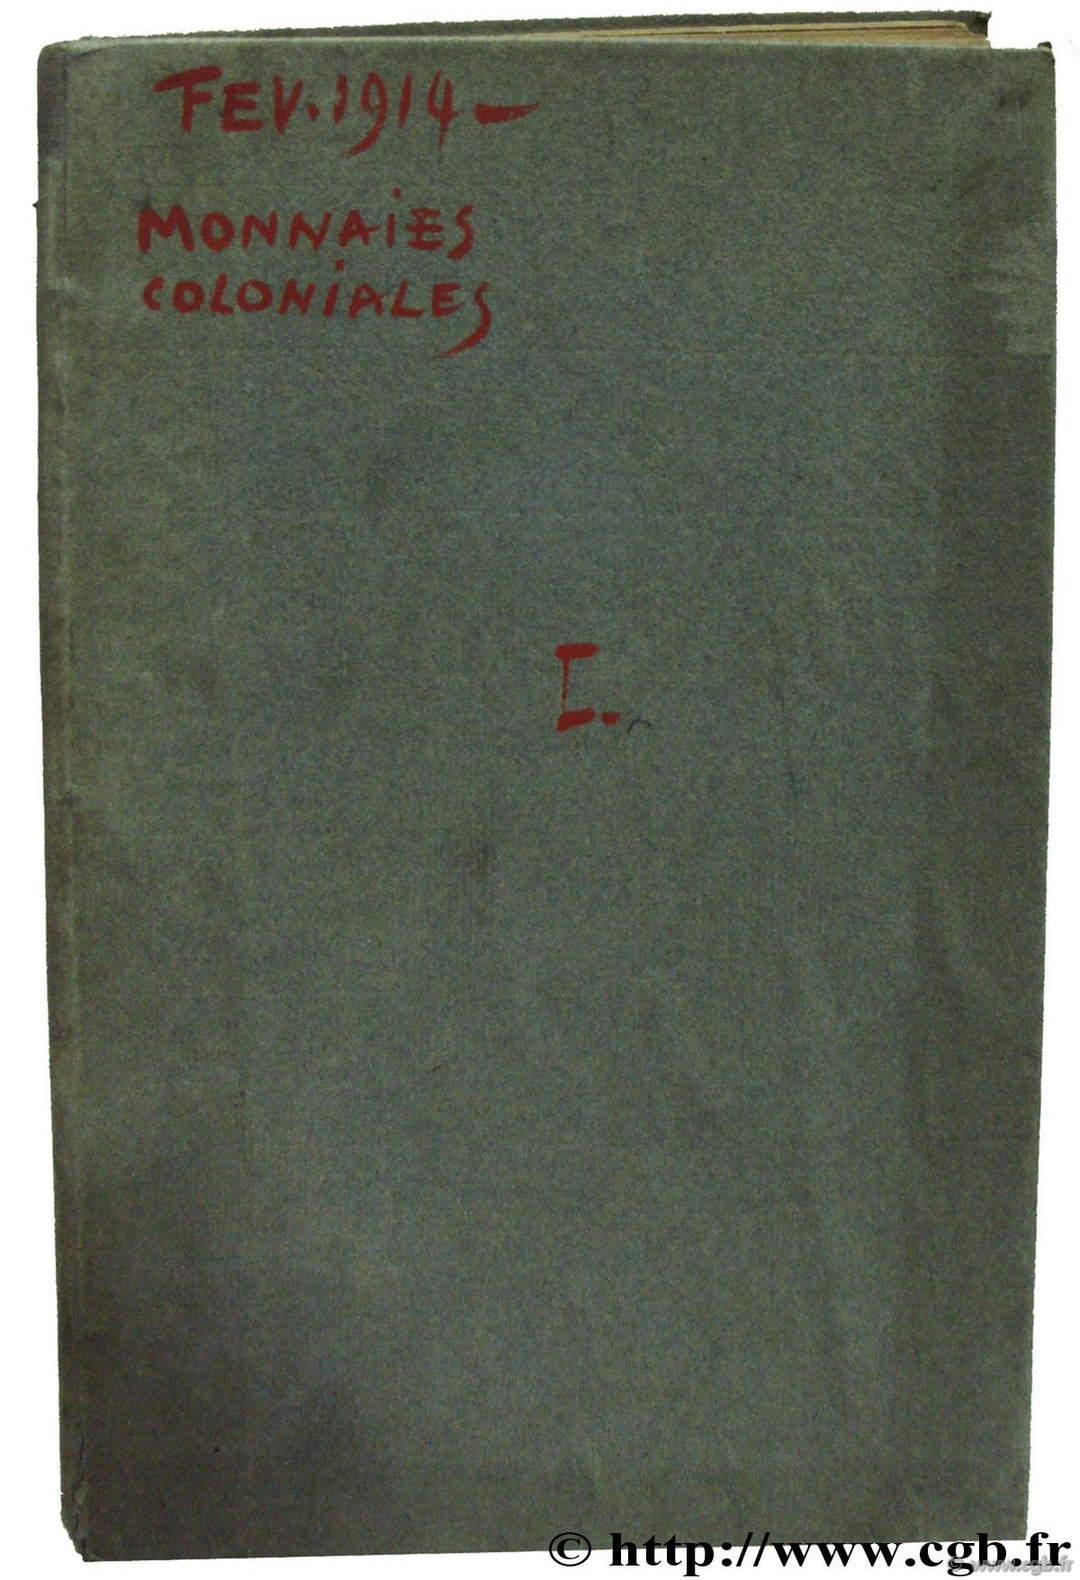 Monnaies coloniales - Collection Henry Thomas Grogan